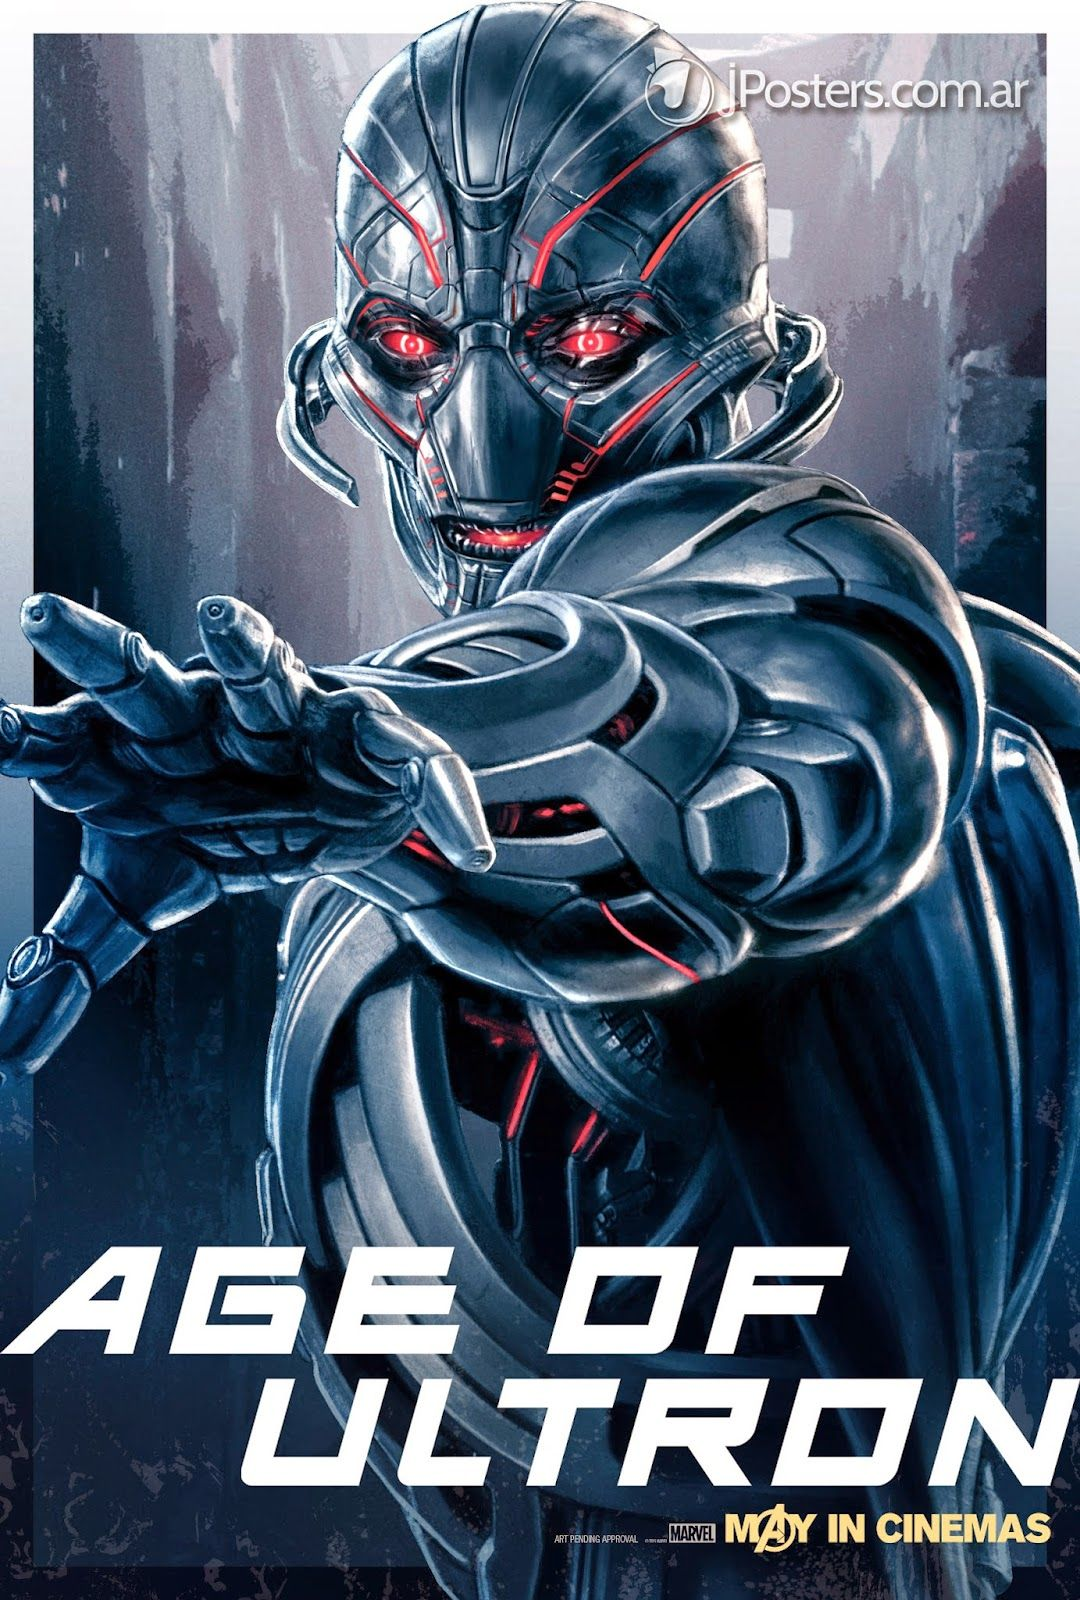 Amazing Wallpaper Marvel Avengers Age Ultron - 983ccedf98bad04e65b1aee77751dbdc  You Should Have_85665.jpg